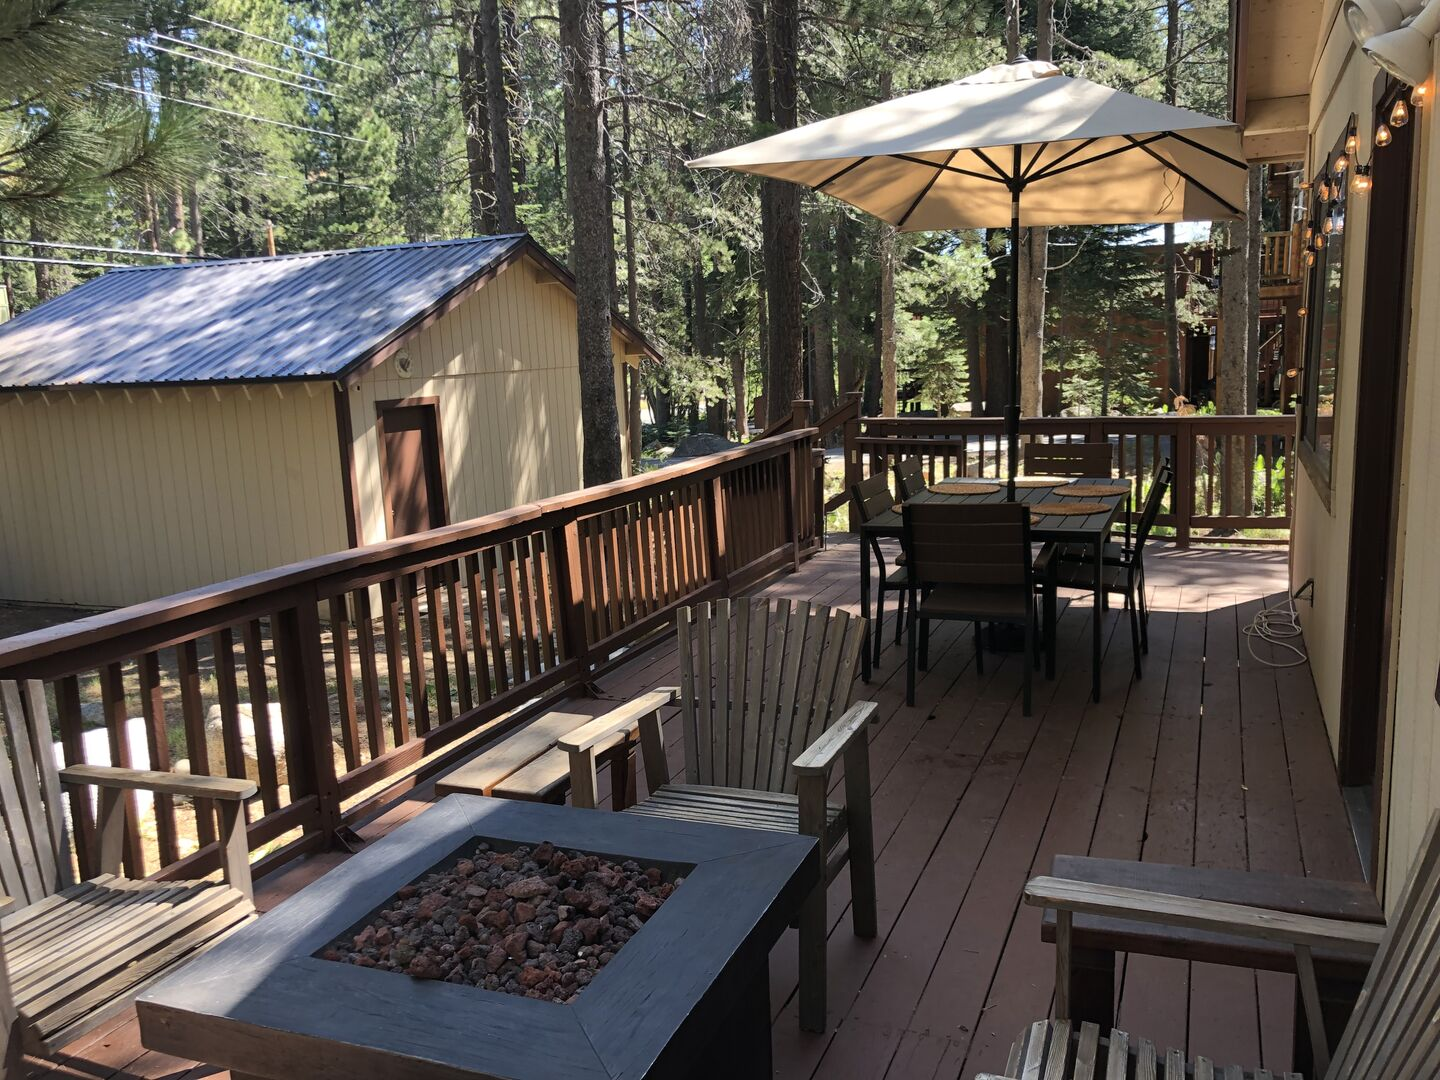 Large Deck Features a Fire Pit and Table with Umbrella